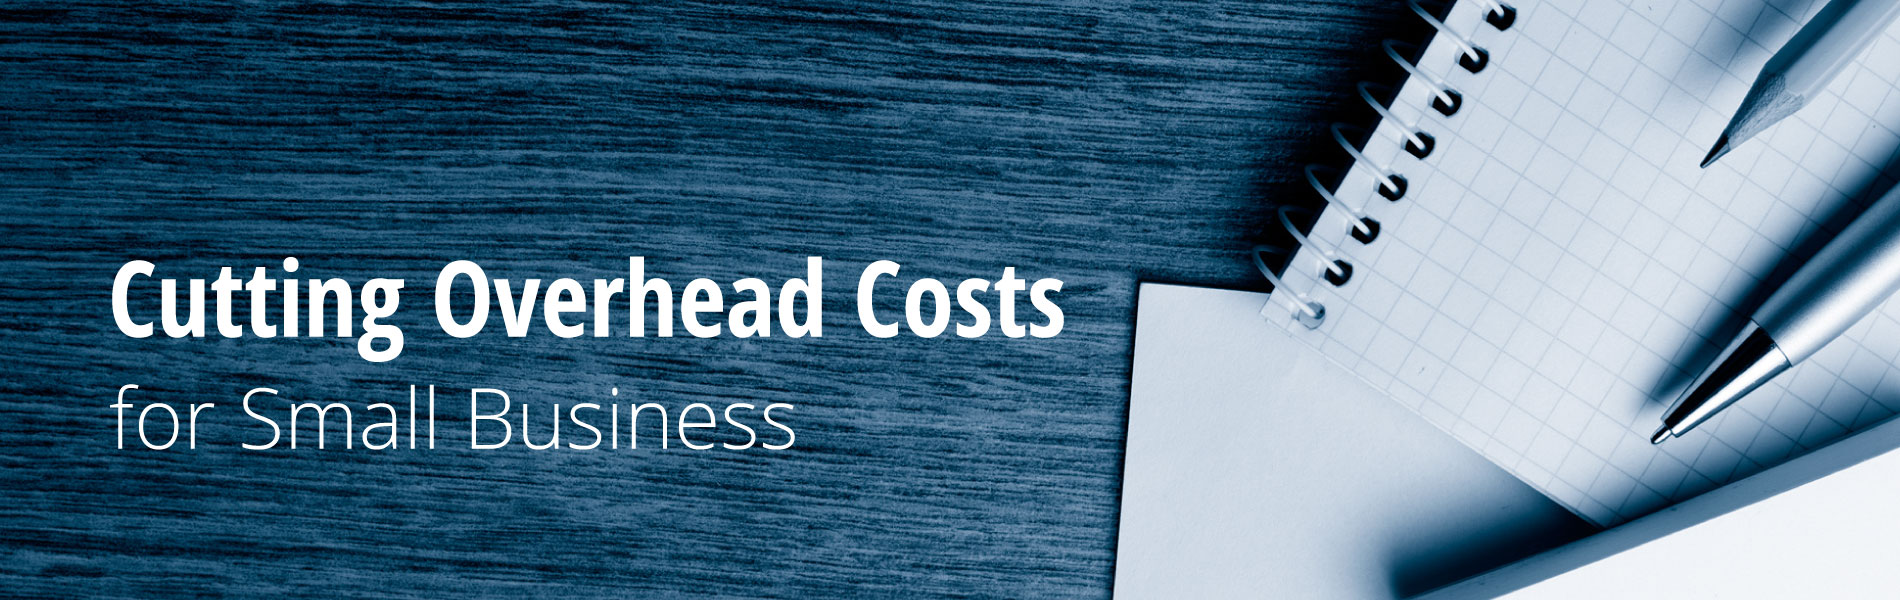 Cutting Overhead Costs for Small Business